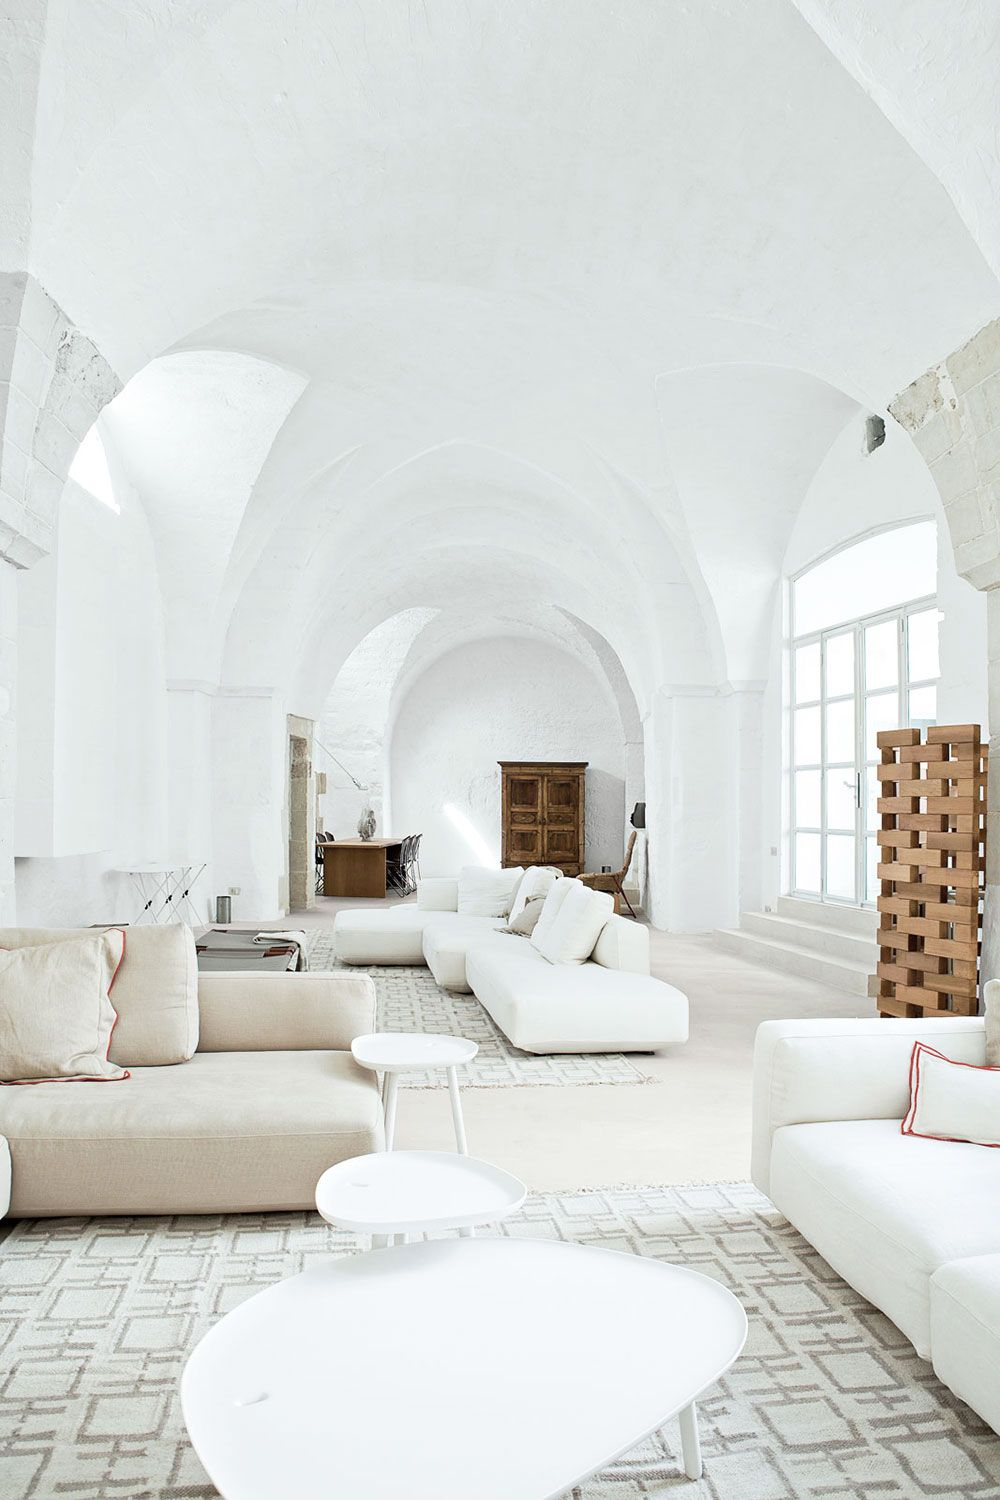 Italian Living Room Design: The Most Stylish House In Italy